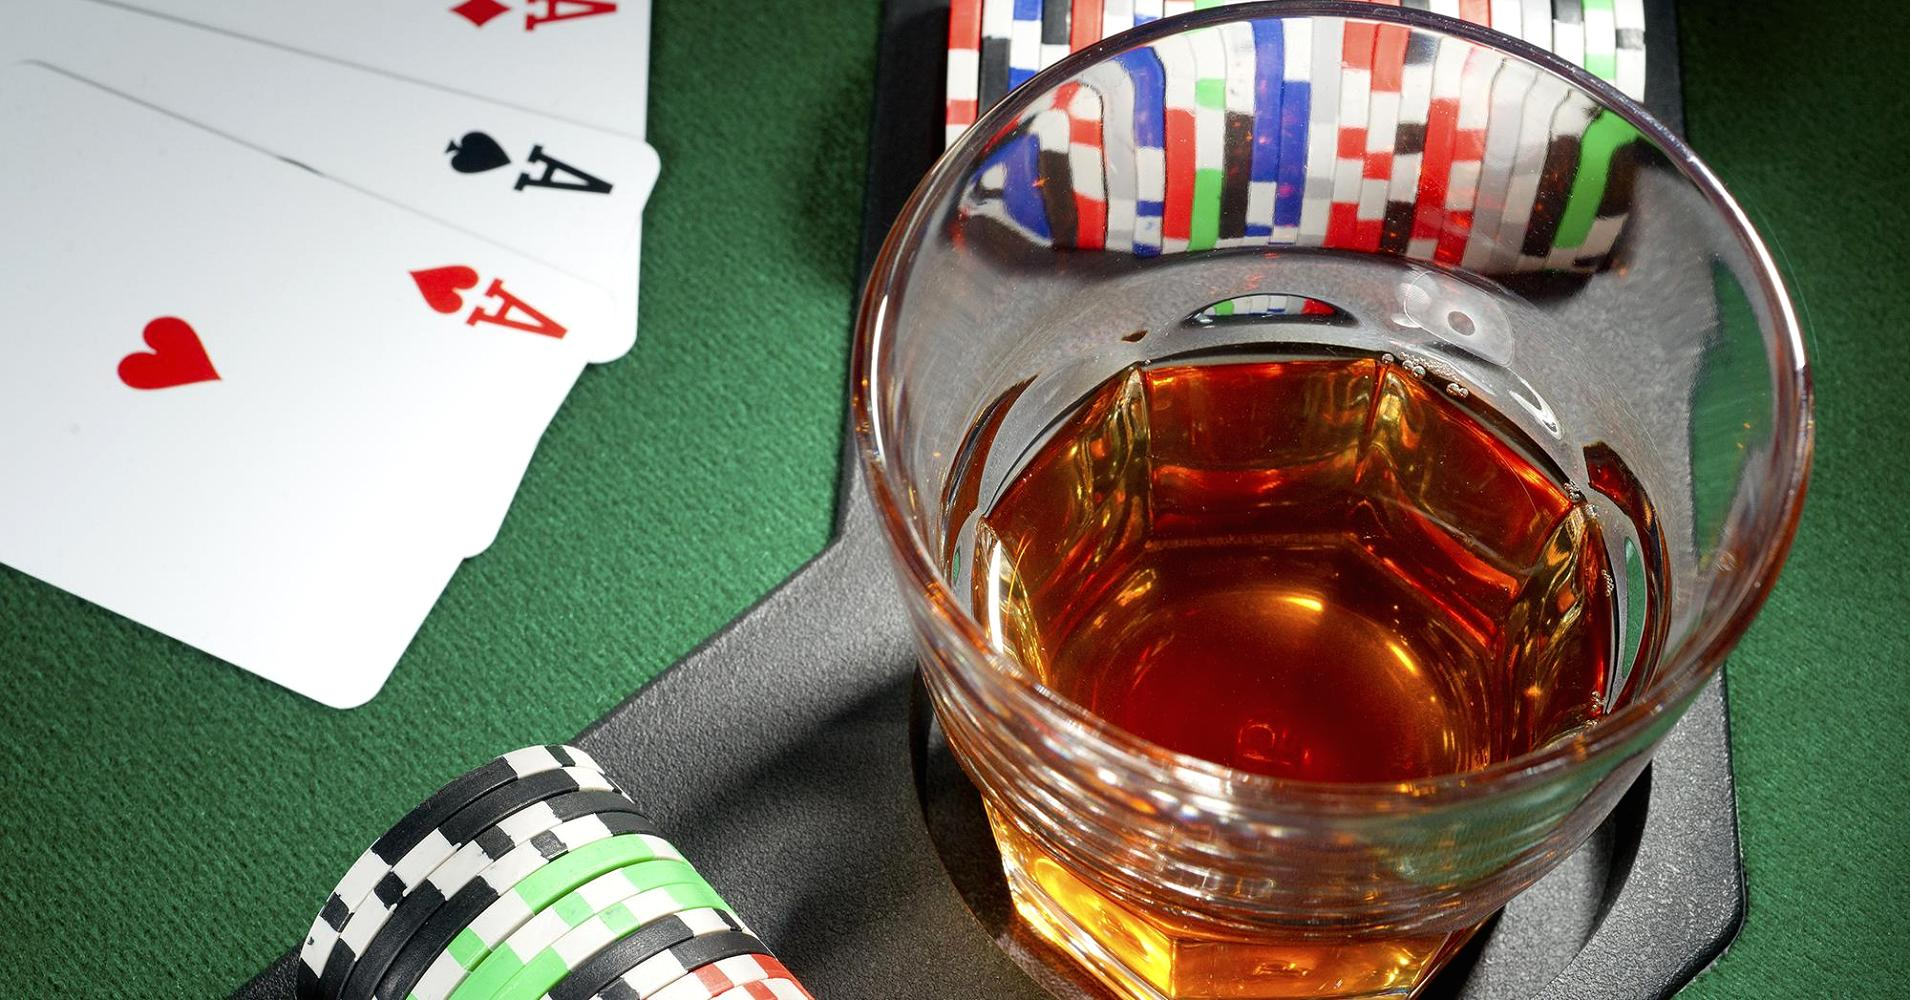 poker addiction or social activity essay I recently started back in school working on my masters, and i have an english class where i have to write an argument essay open account online poker essay.